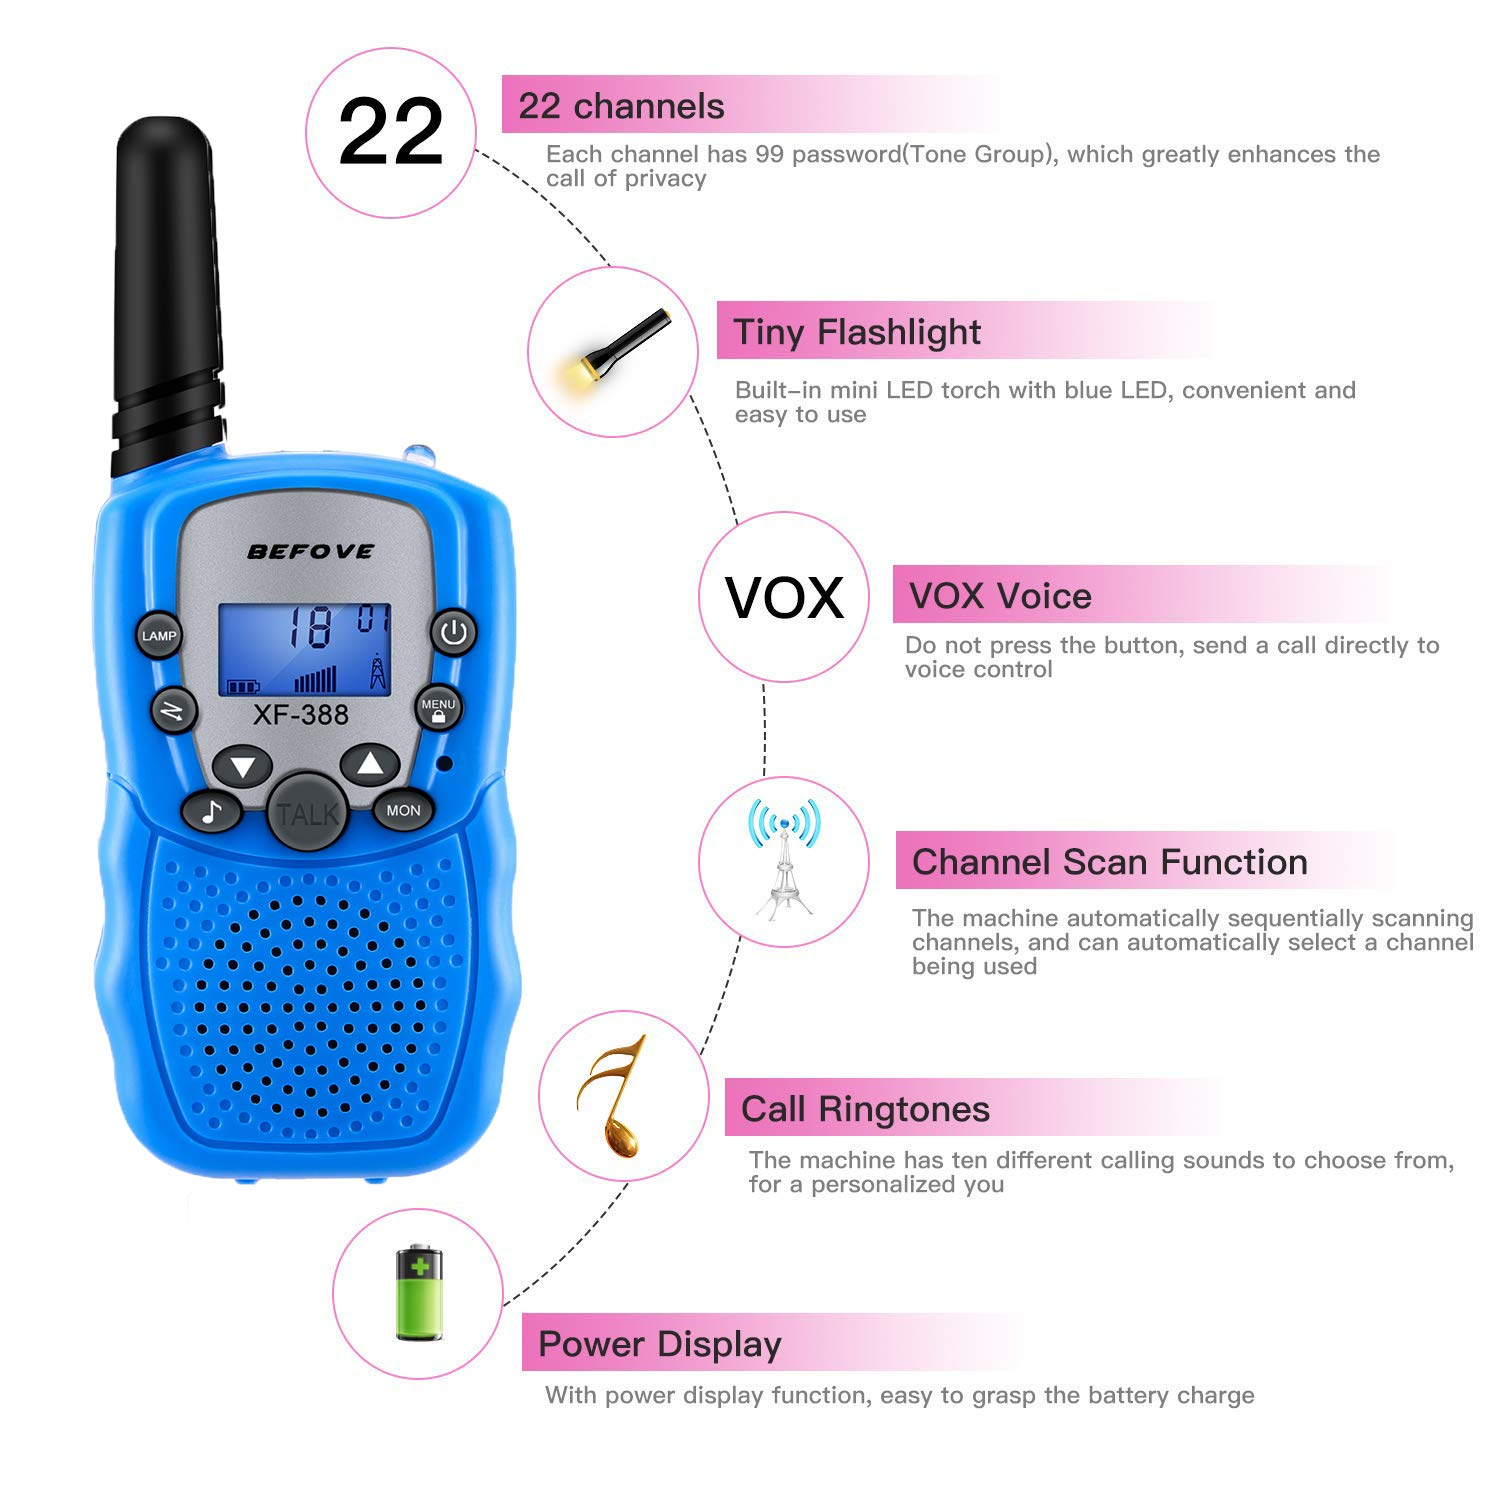 Befove Walkie Talkies, 3 x Walkie Talkie Kids 22 Channel Handheld FRS Transceiver Two Way Radios Long Range Walky Talky for Kids Adults, Camping Hiking Outdoor Use with Straps by Befove (Image #2)